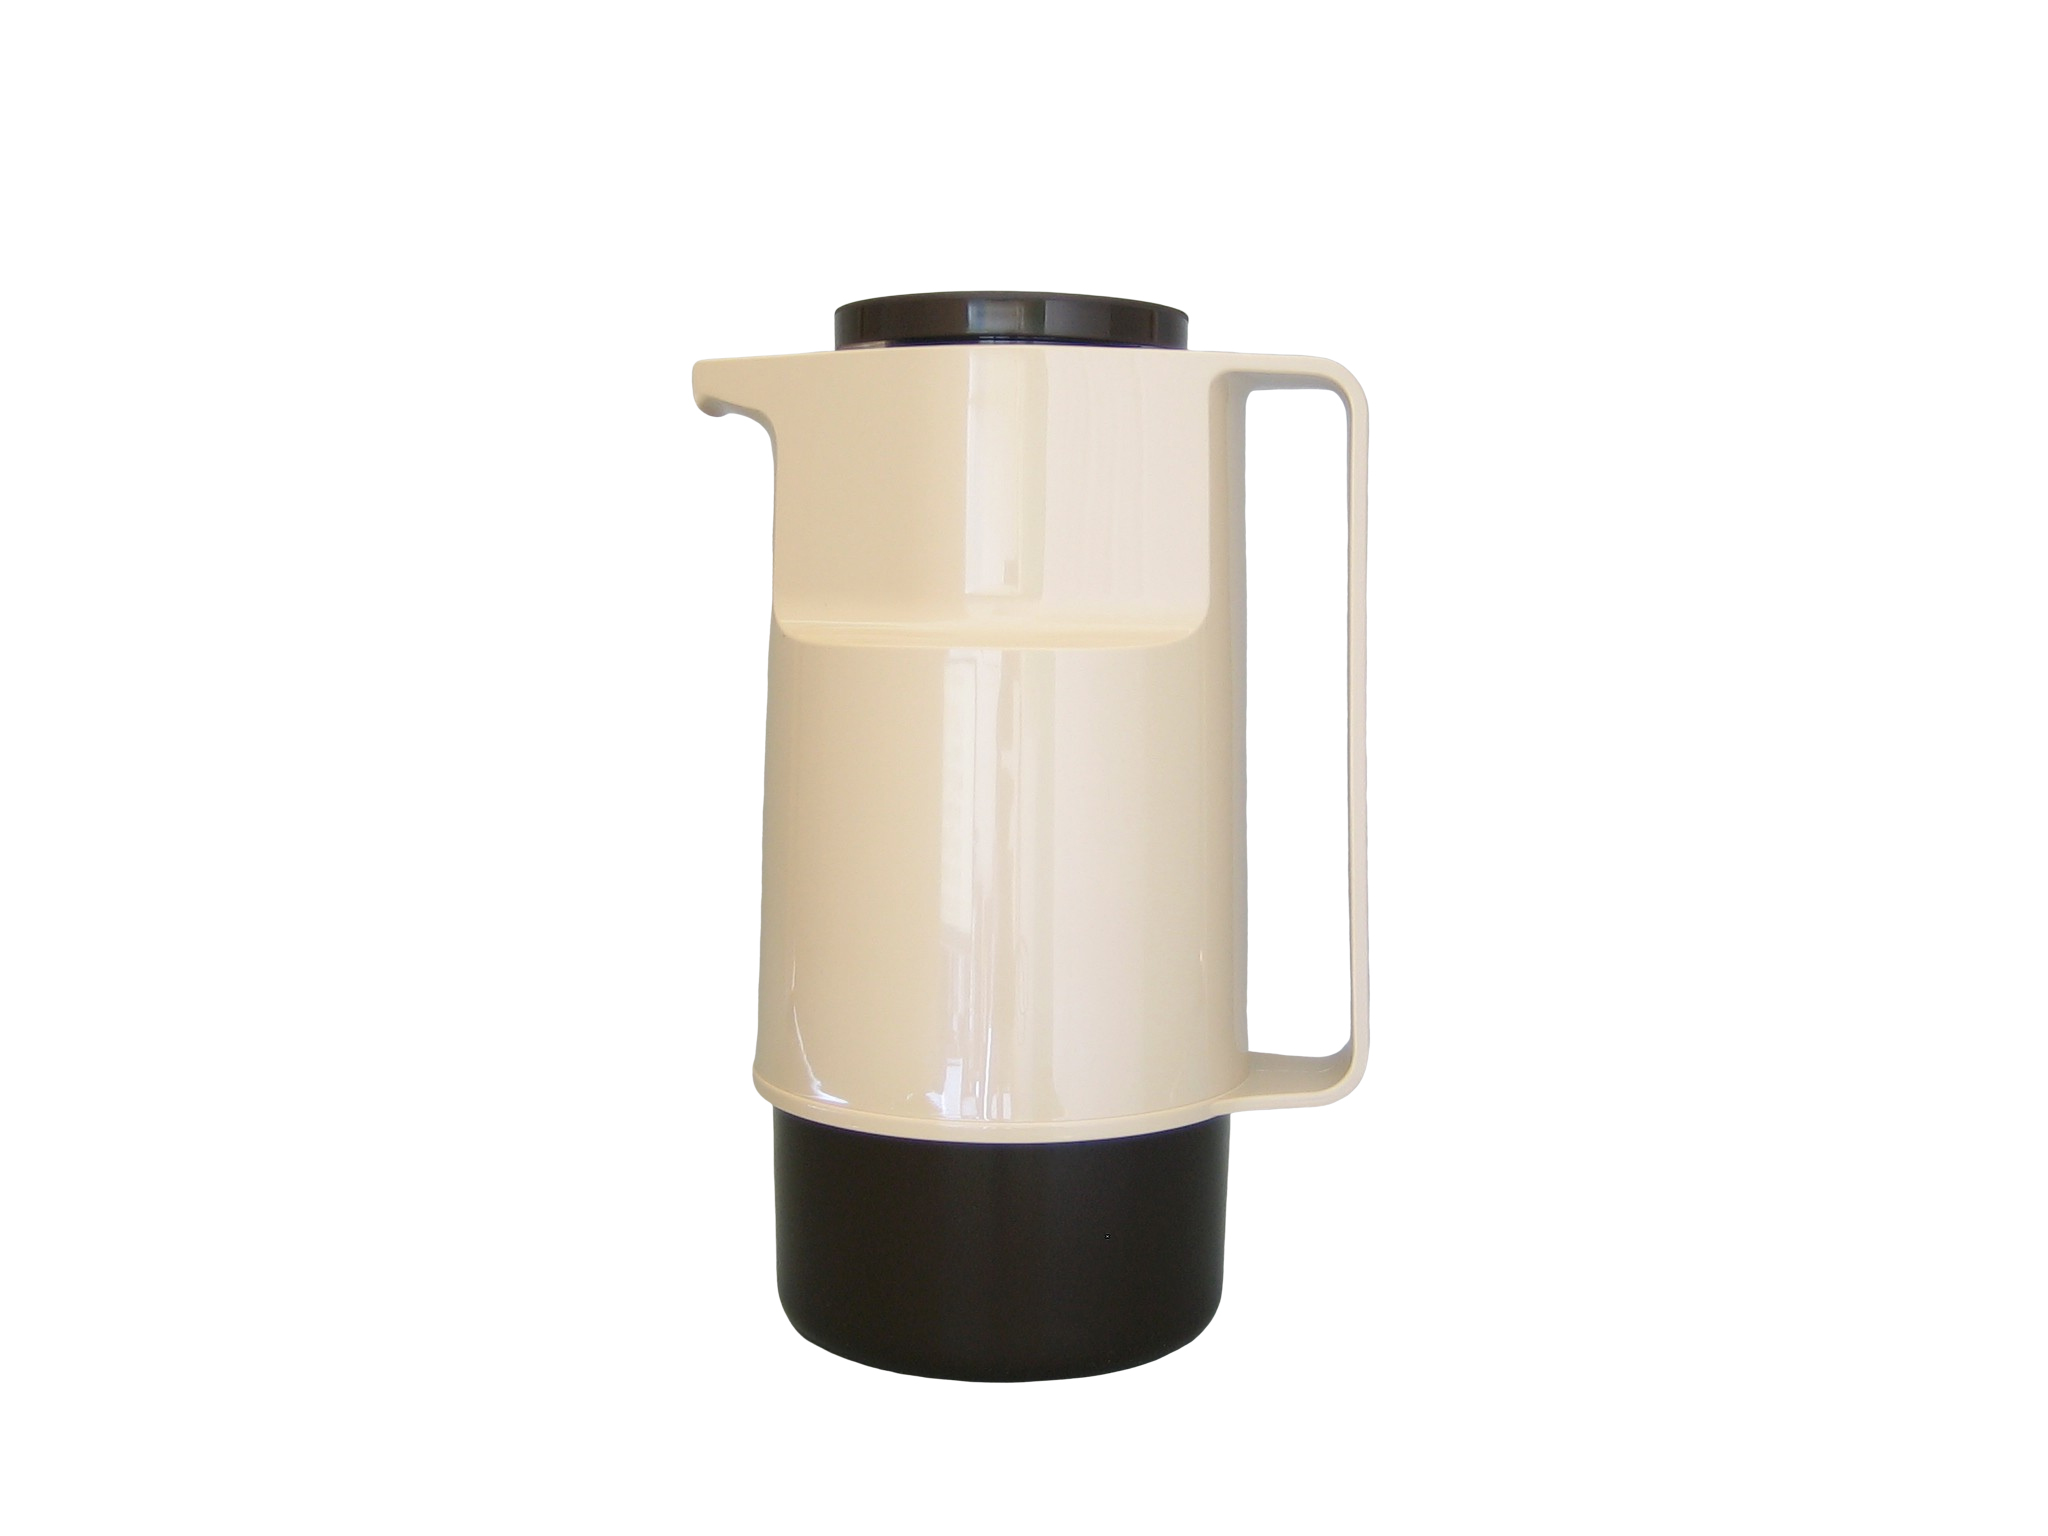 210-1030 - Vacuum carafe ABS beige/brown 1.0 L - Isobel